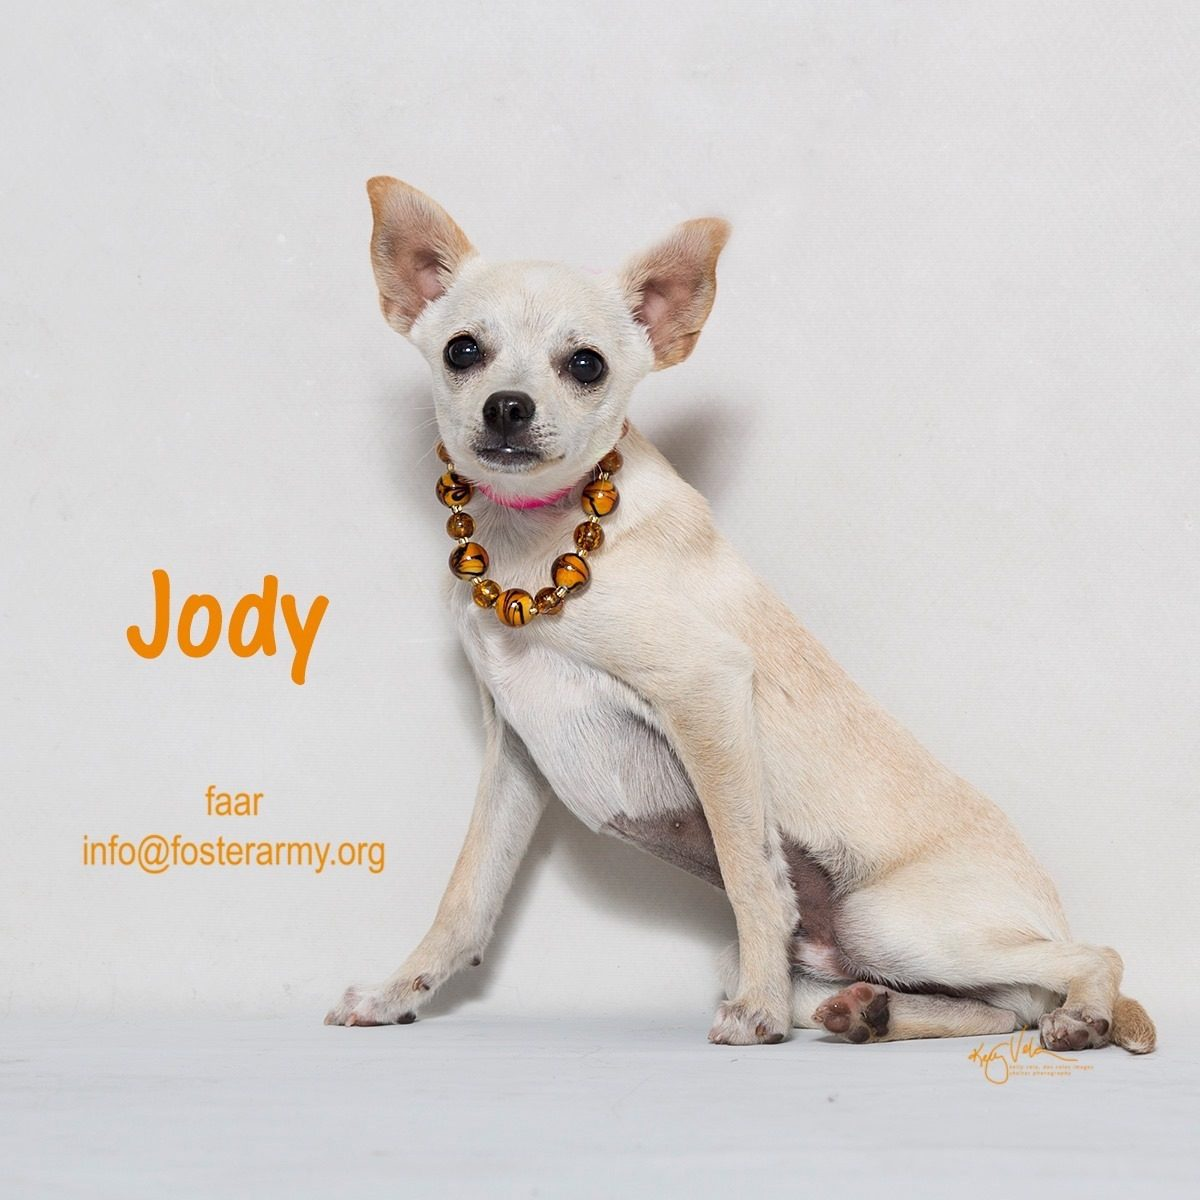 Adopt Jody and make him the man in your life. Riverside, CA with Foster Army Animal Rescue